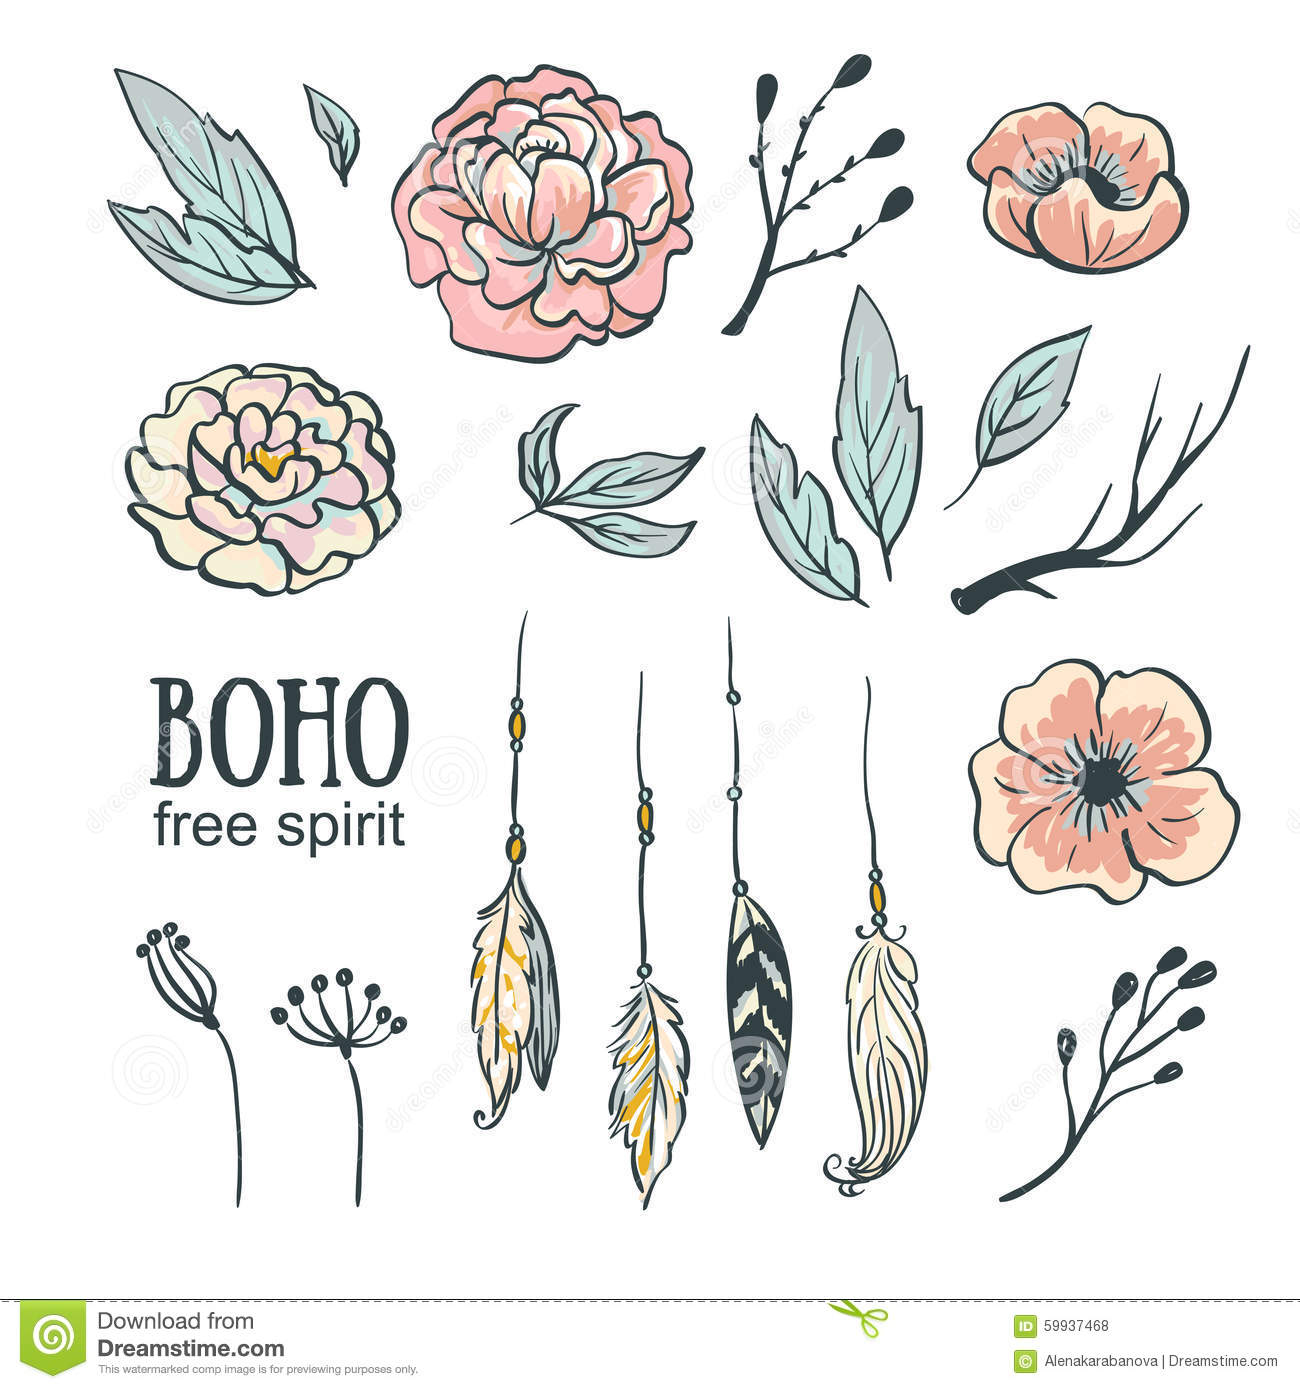 free vector green boho - photo #14